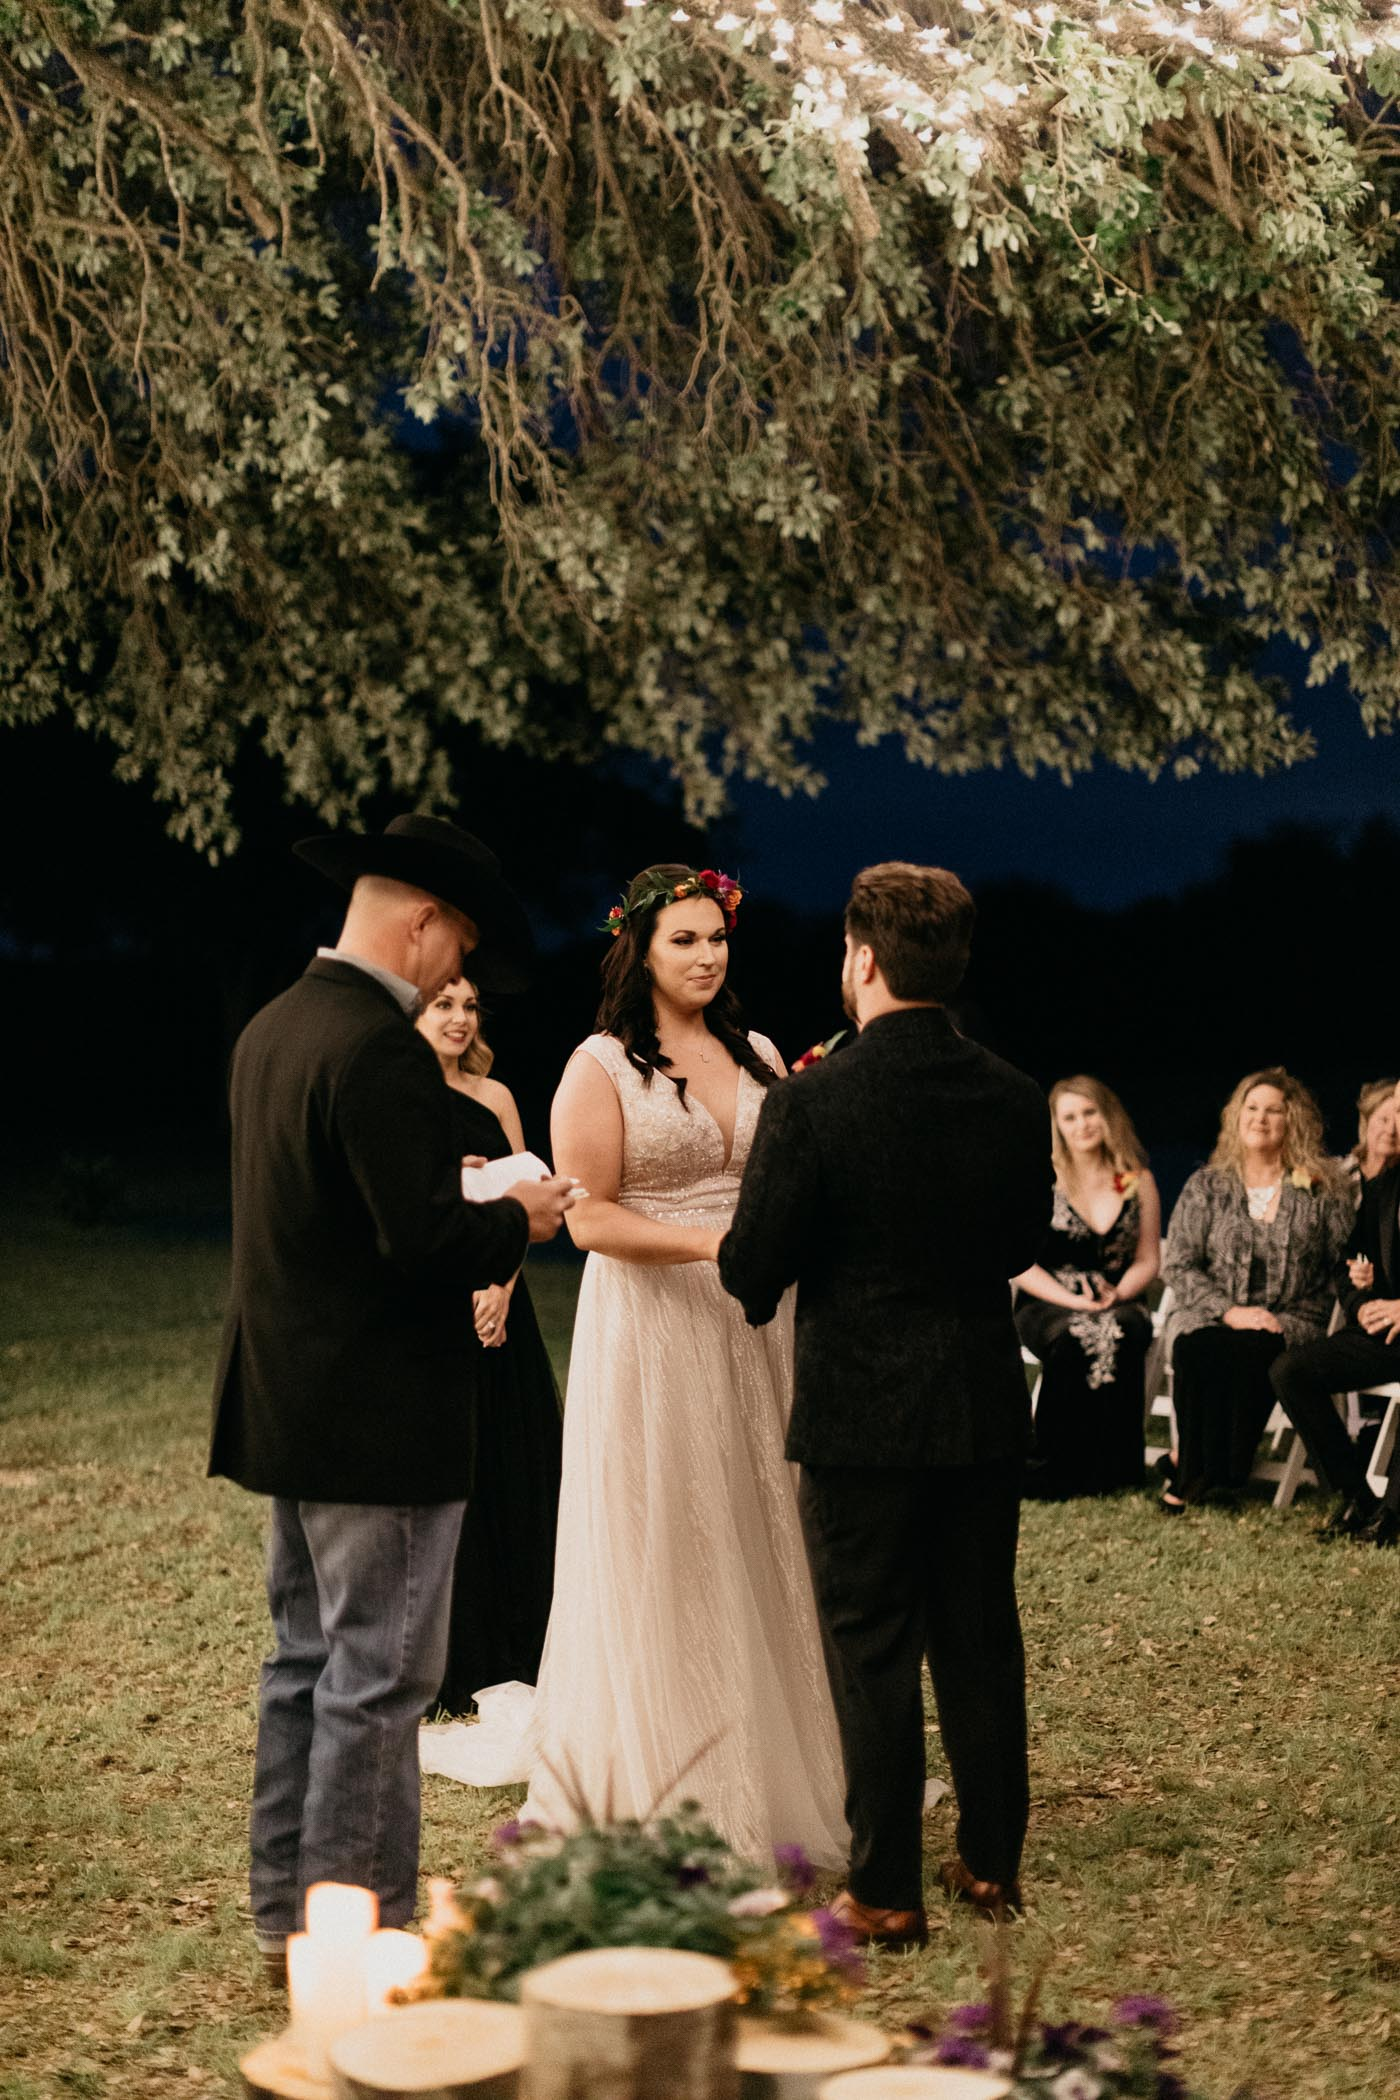 Bride and groom looking at each other during outdoor wedding ceremony at night time